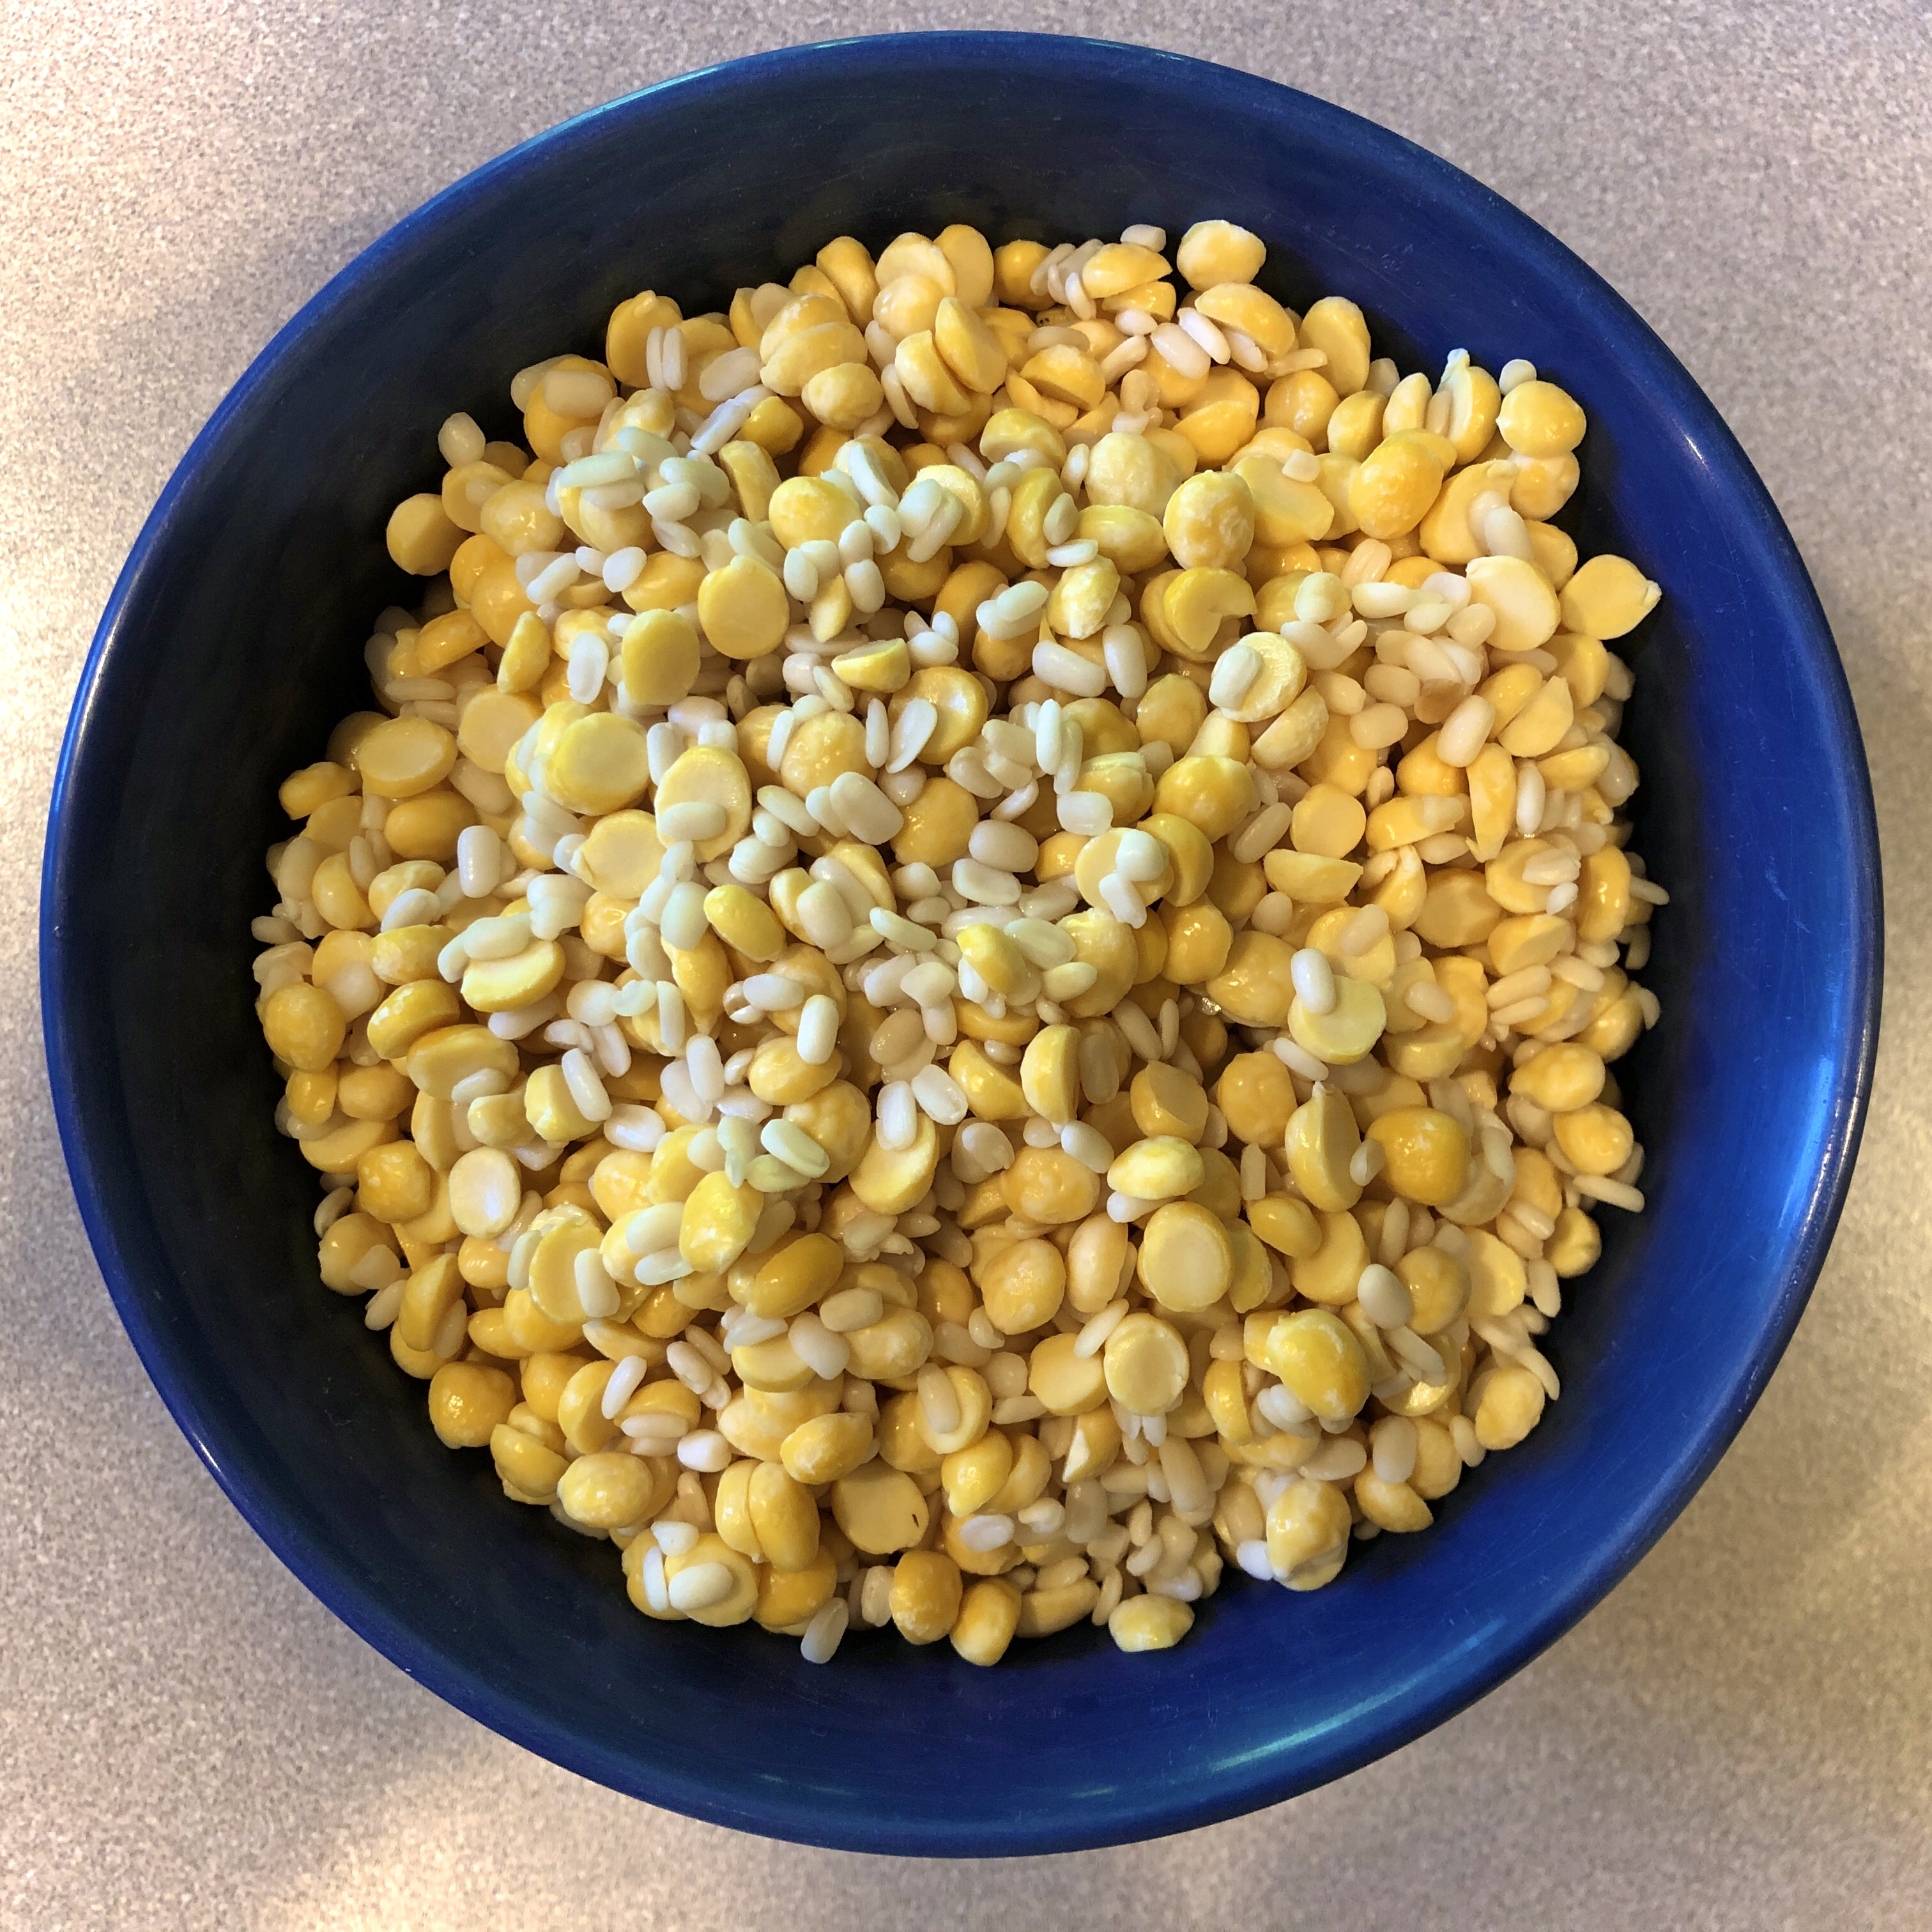 Soaked lentils in a bowl